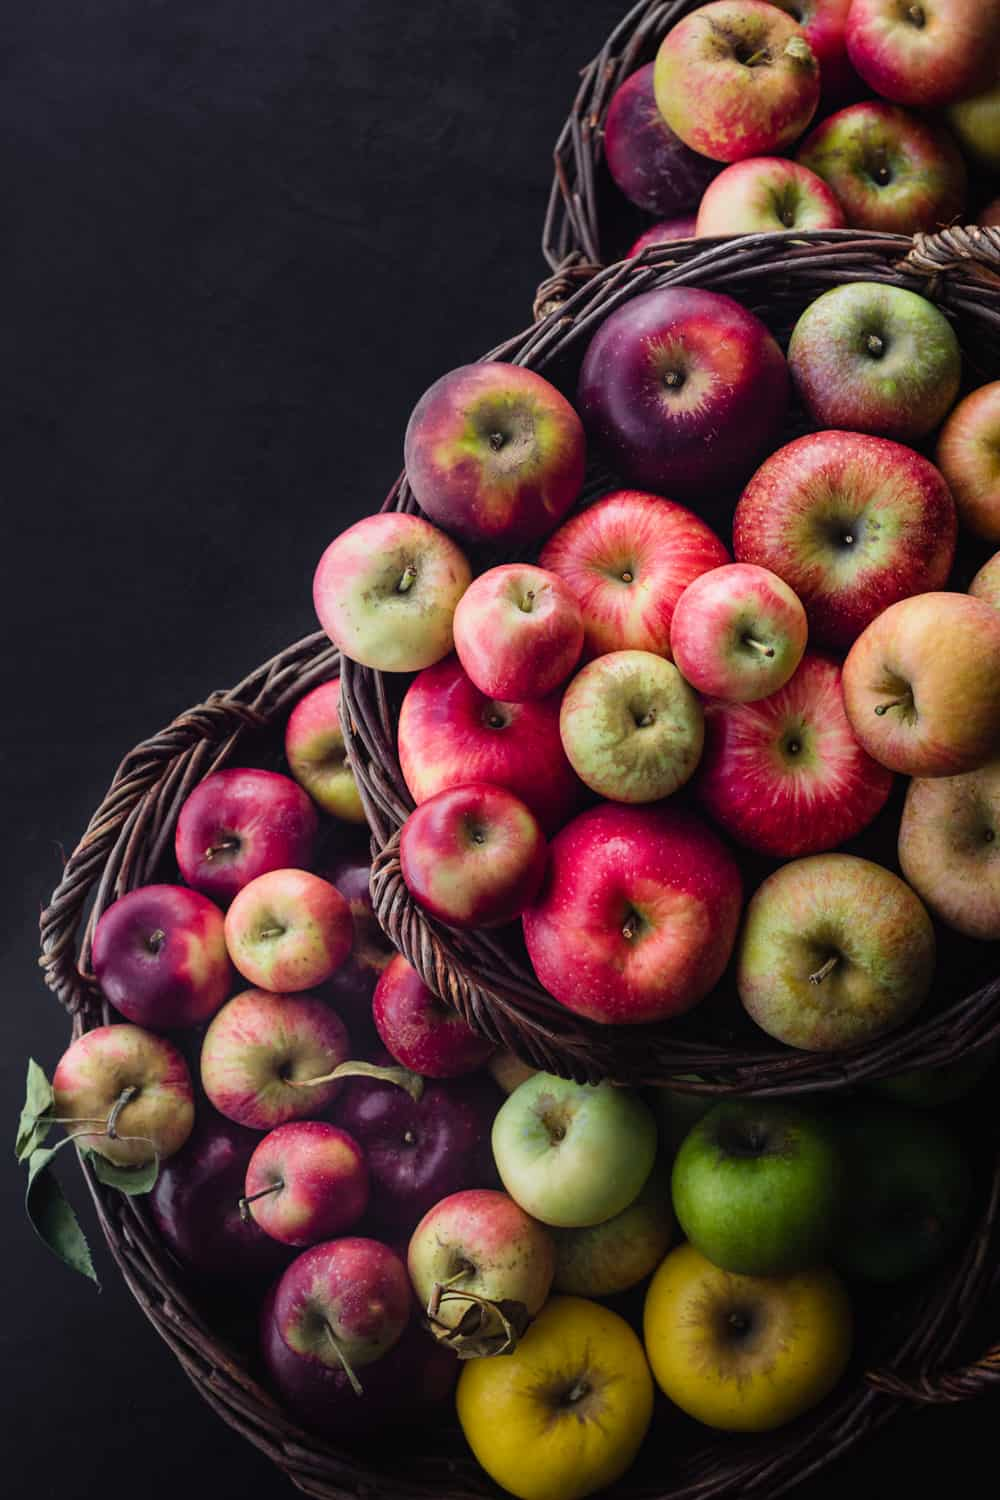 3 different baked filled with fresh apples in all colors of the rainbow; overhead on a black background.